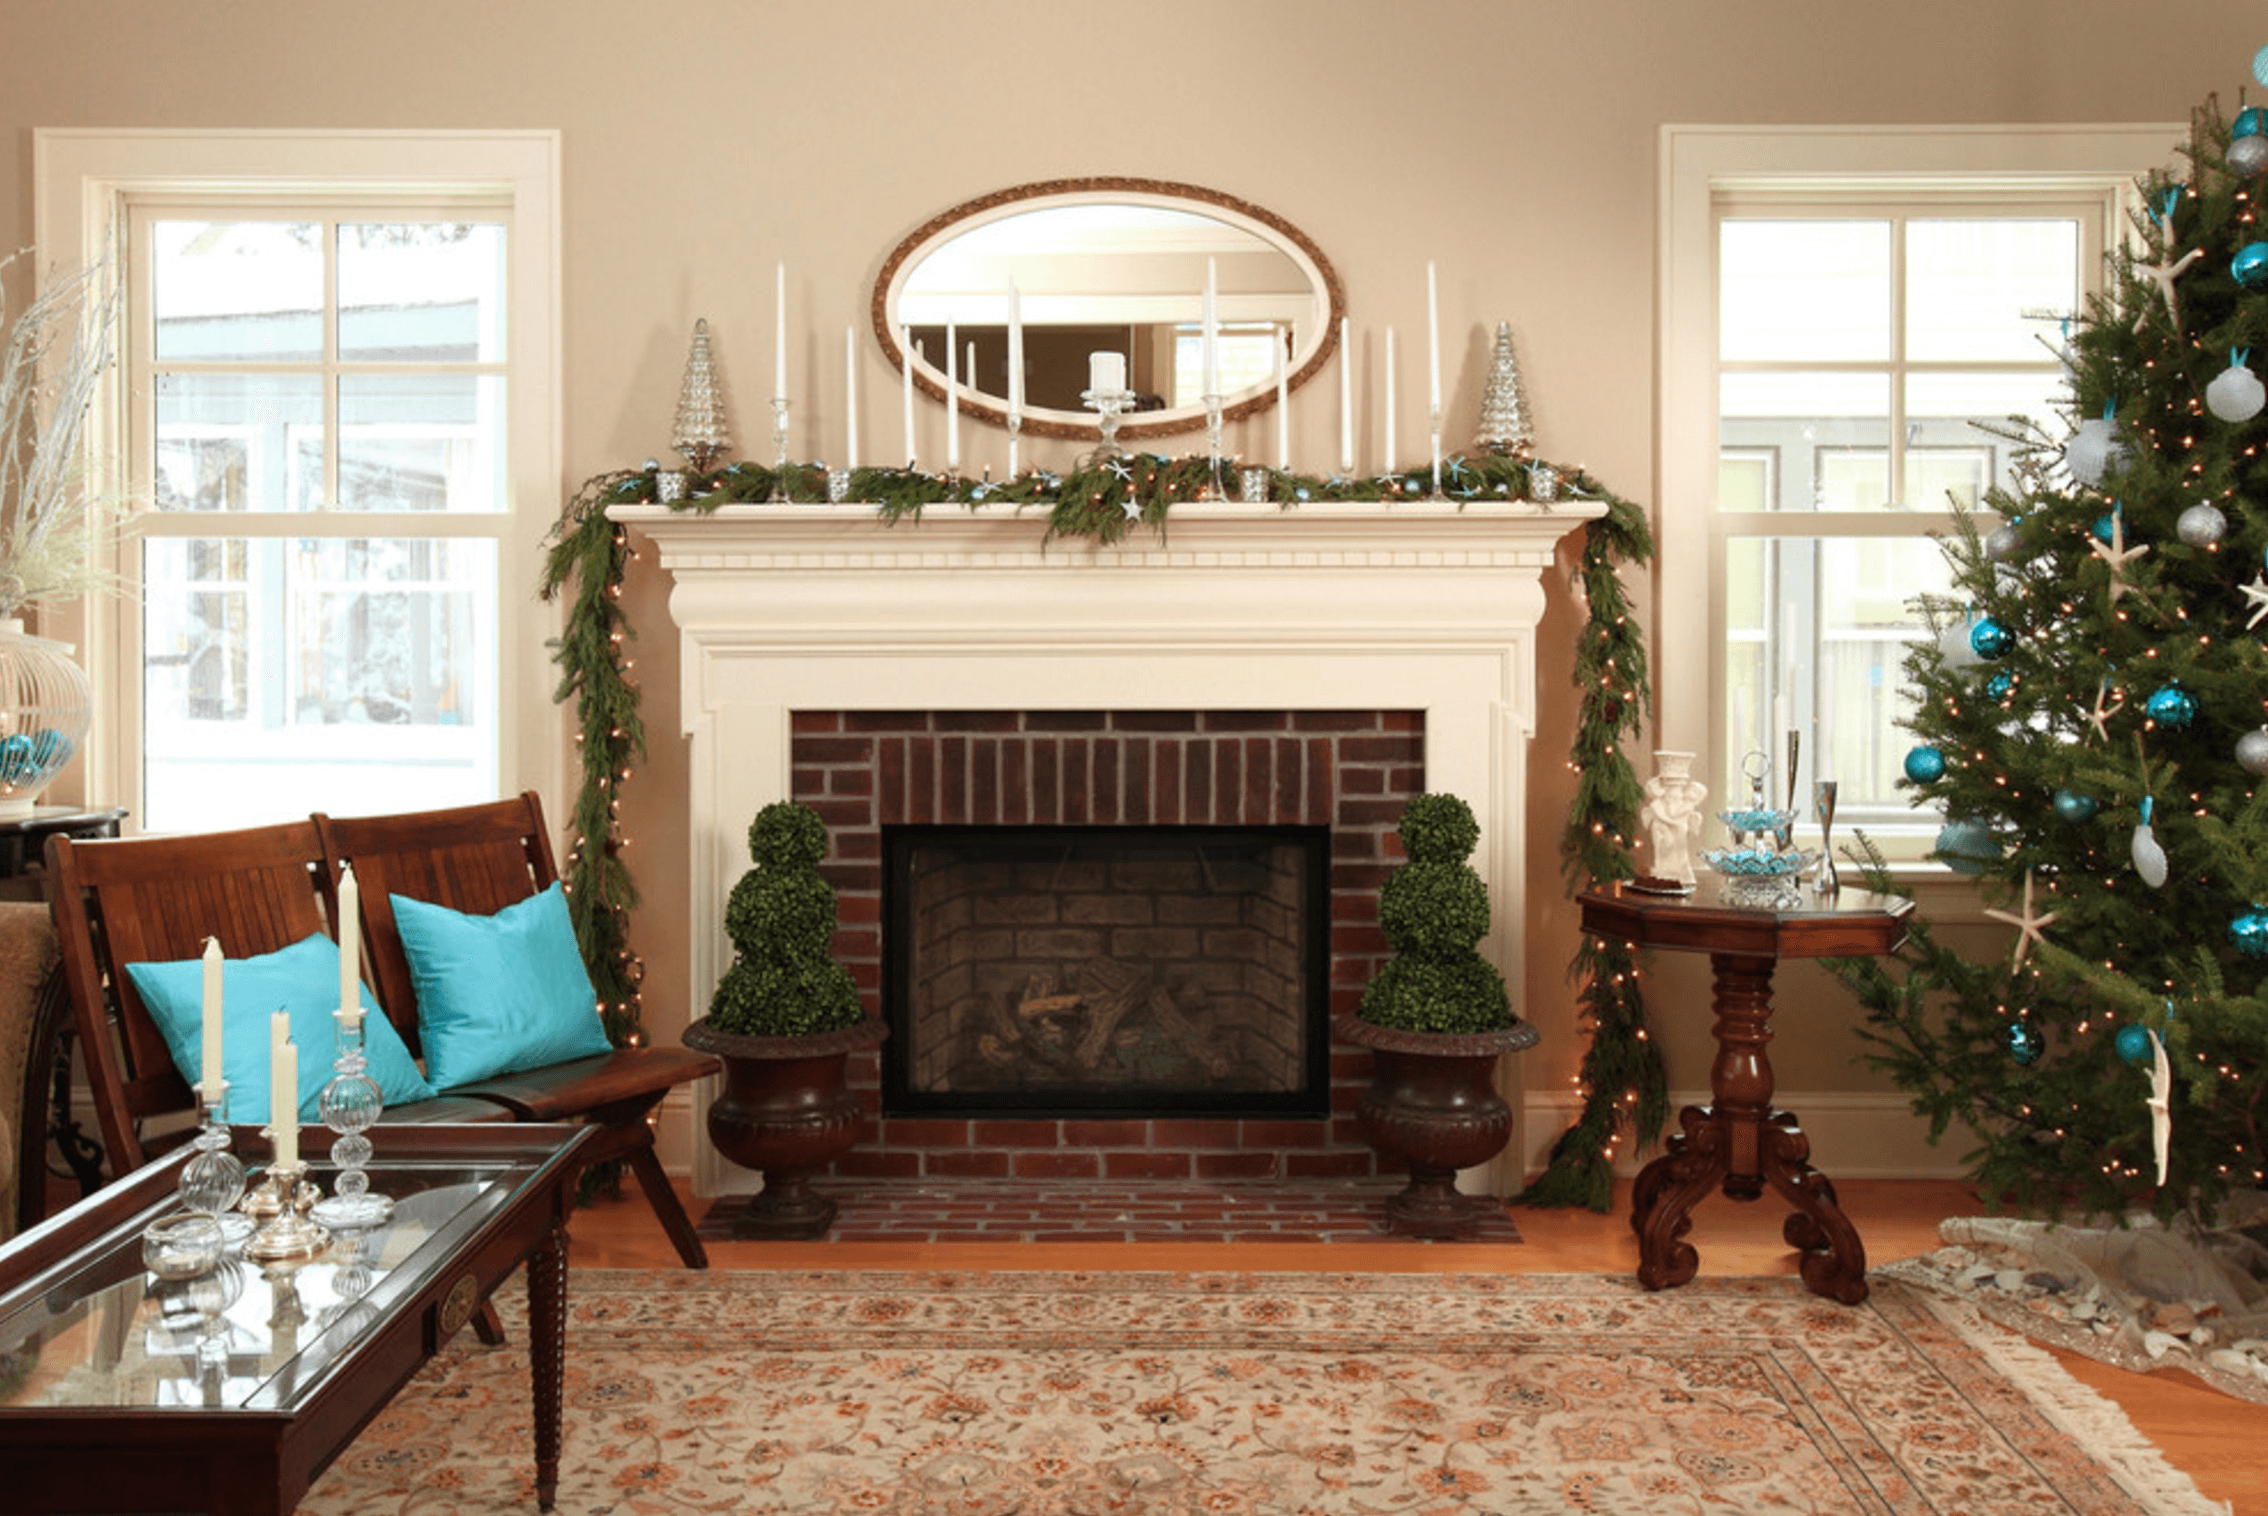 How To Decorate A Brick Fireplace Mantel Decorating Ideas Freshome